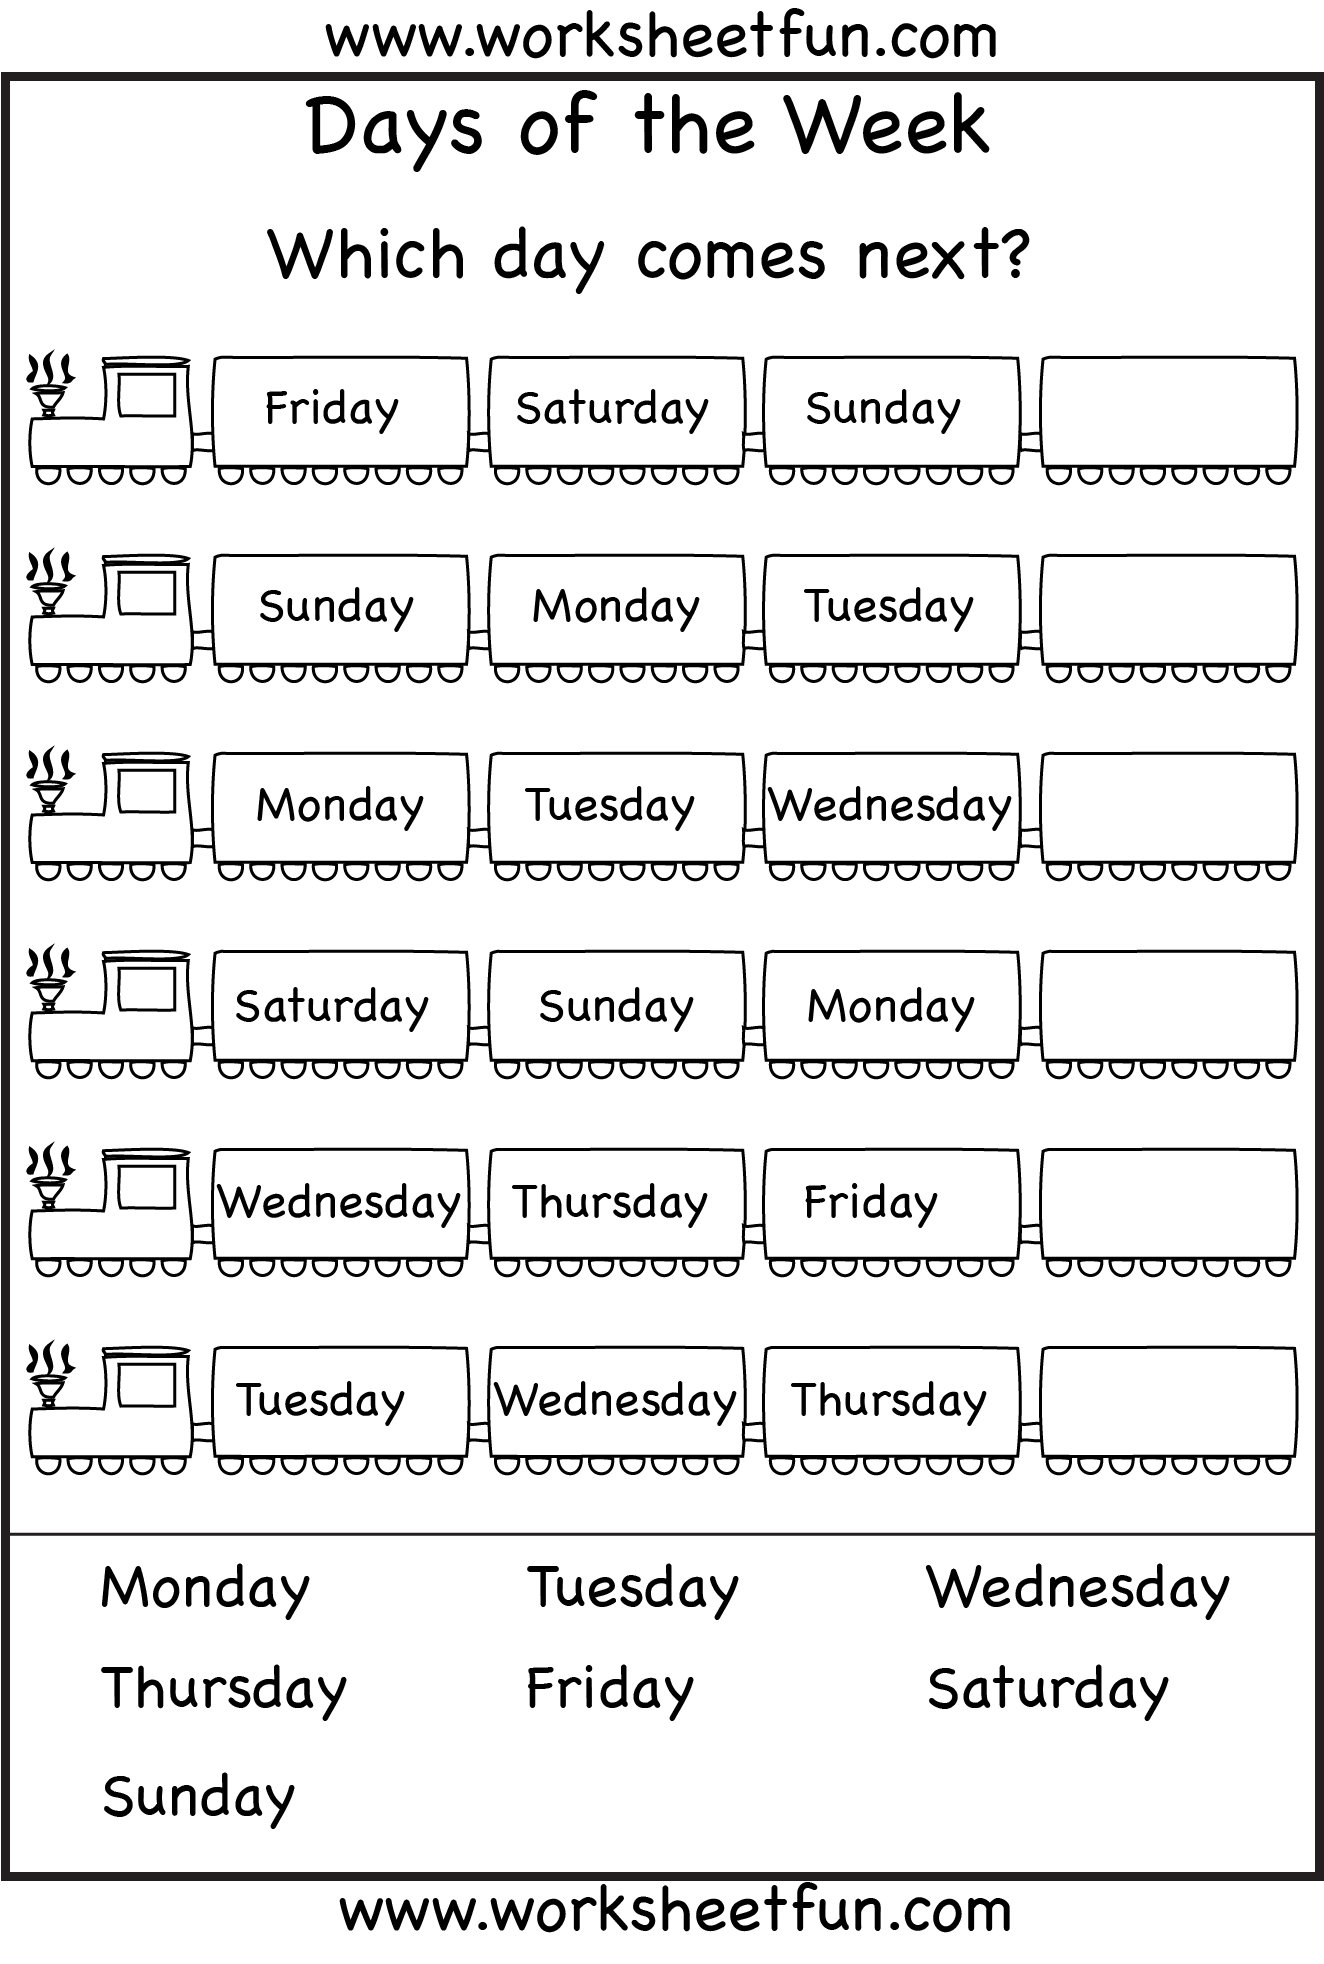 Days of the Week Worksheet Printable Worksheets – Days of the Week Kindergarten Worksheets